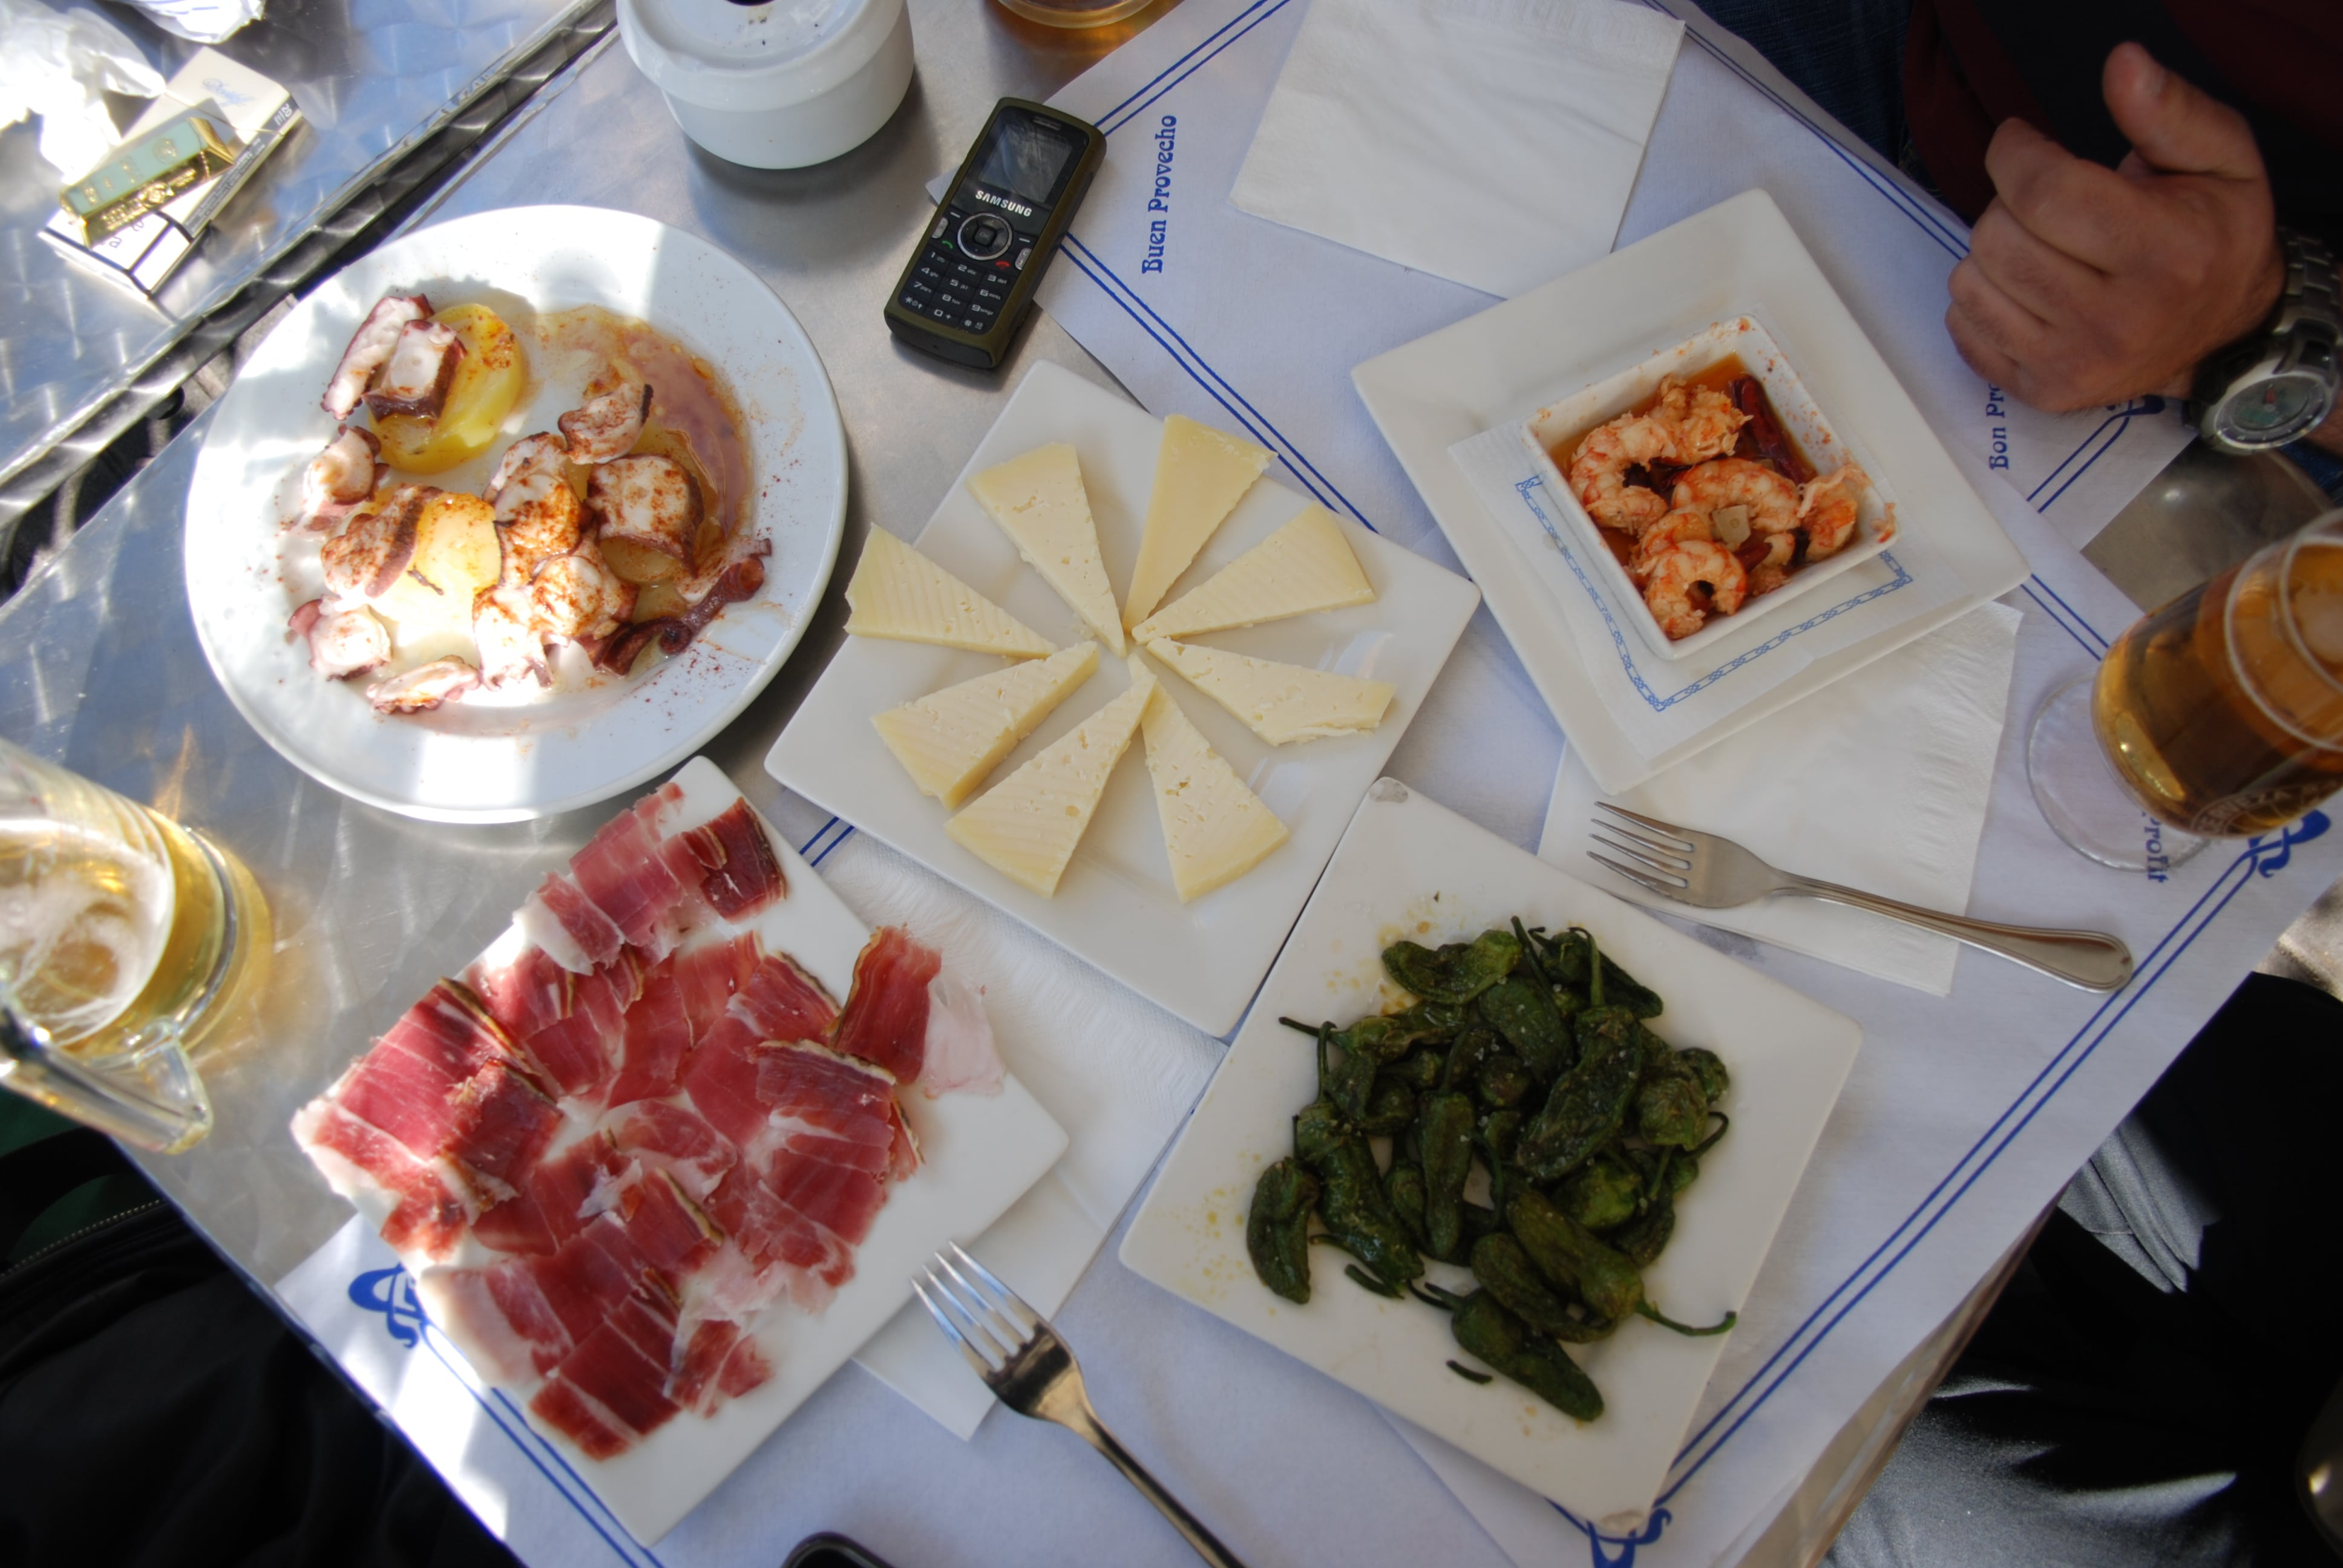 Enjoying tapas is a delicious thing to do in Spain